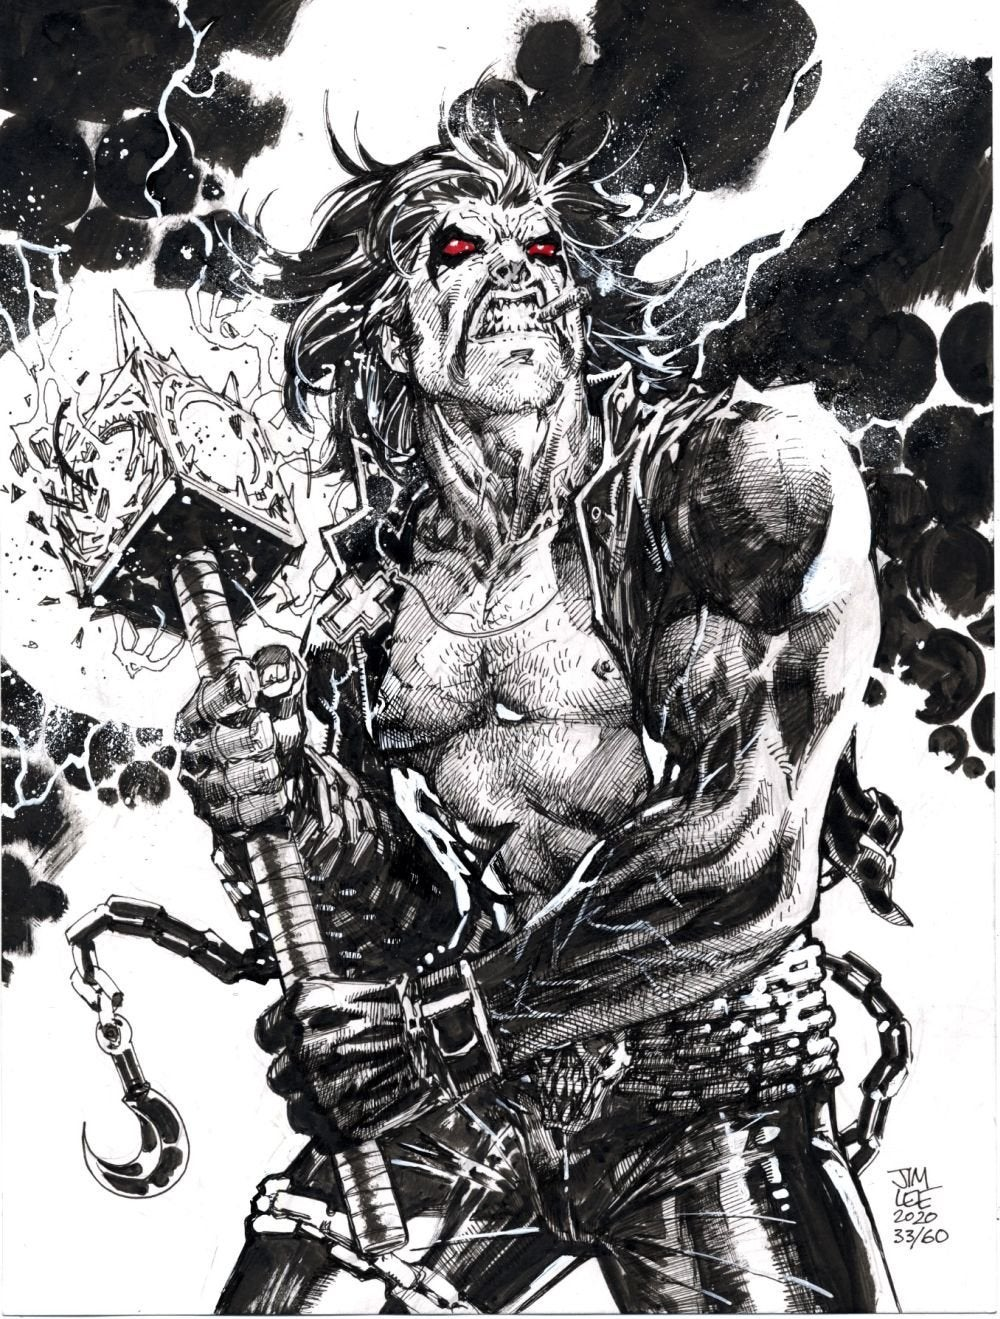 jim lee exclusive sketch of lobo